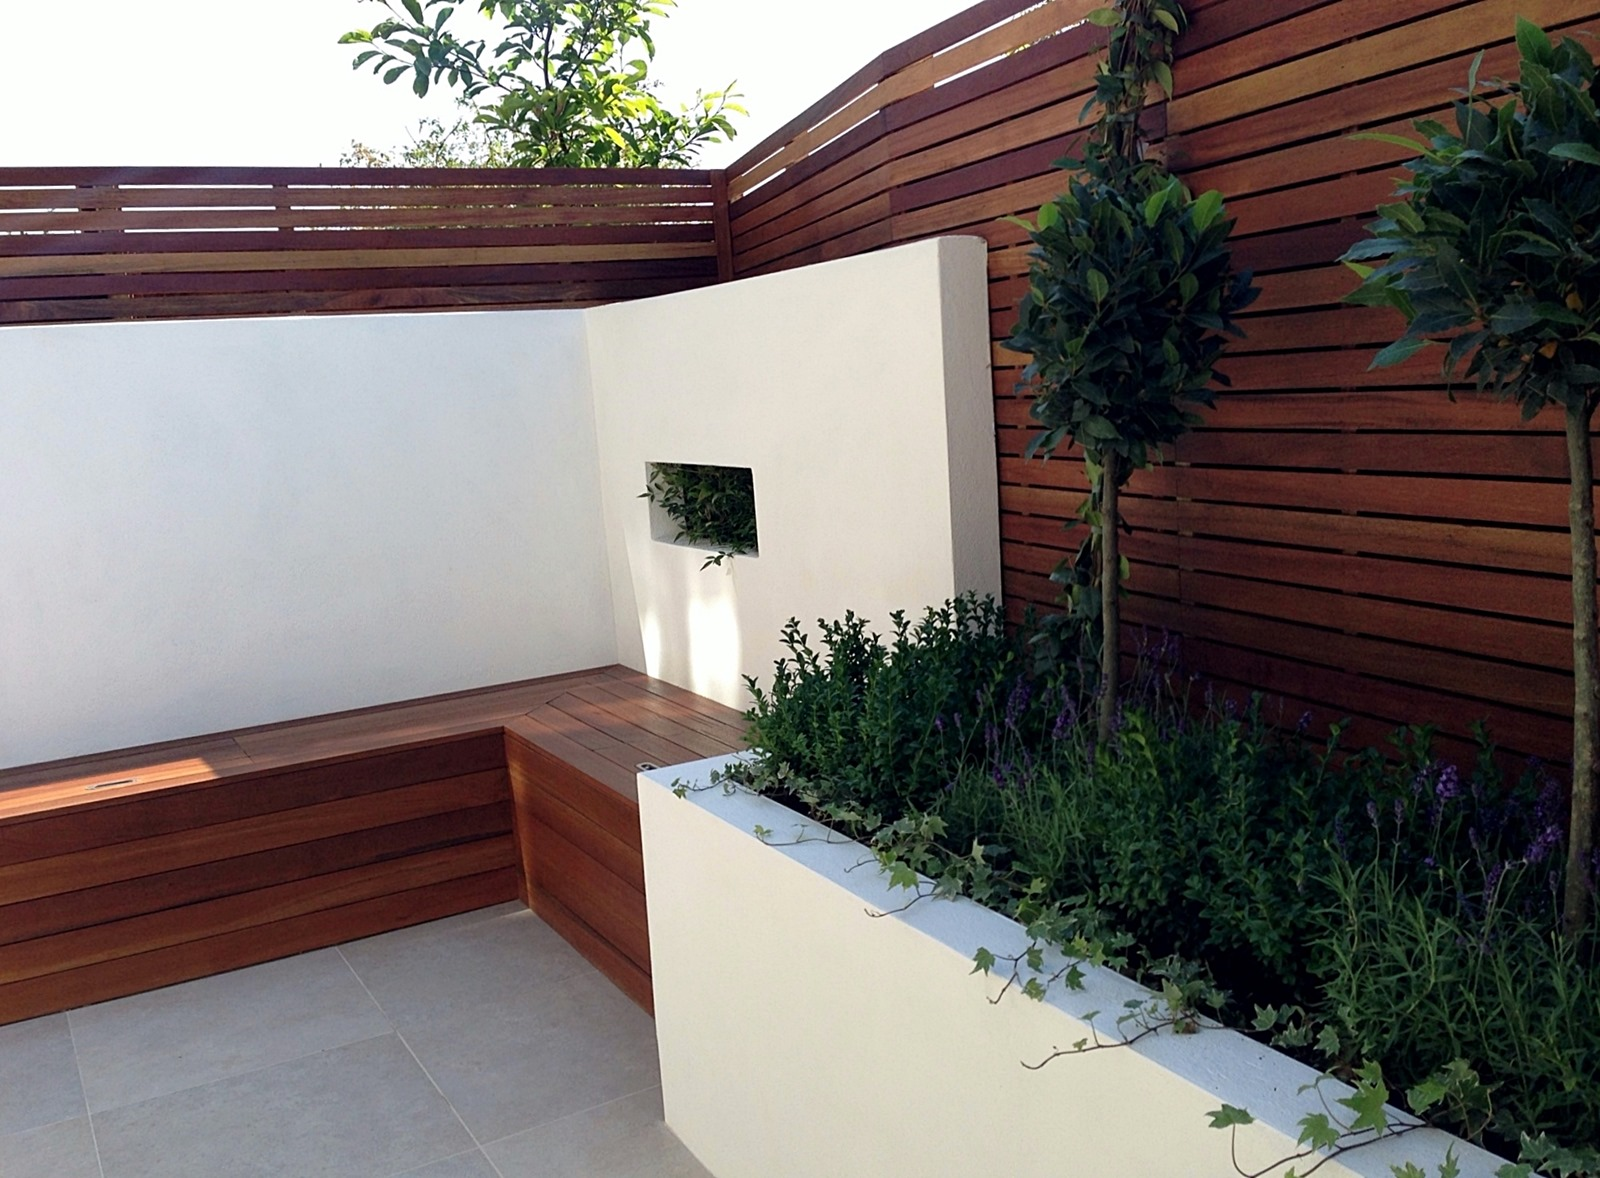 Small garden design london clapham balham ideas low for Small garden designs low maintenance